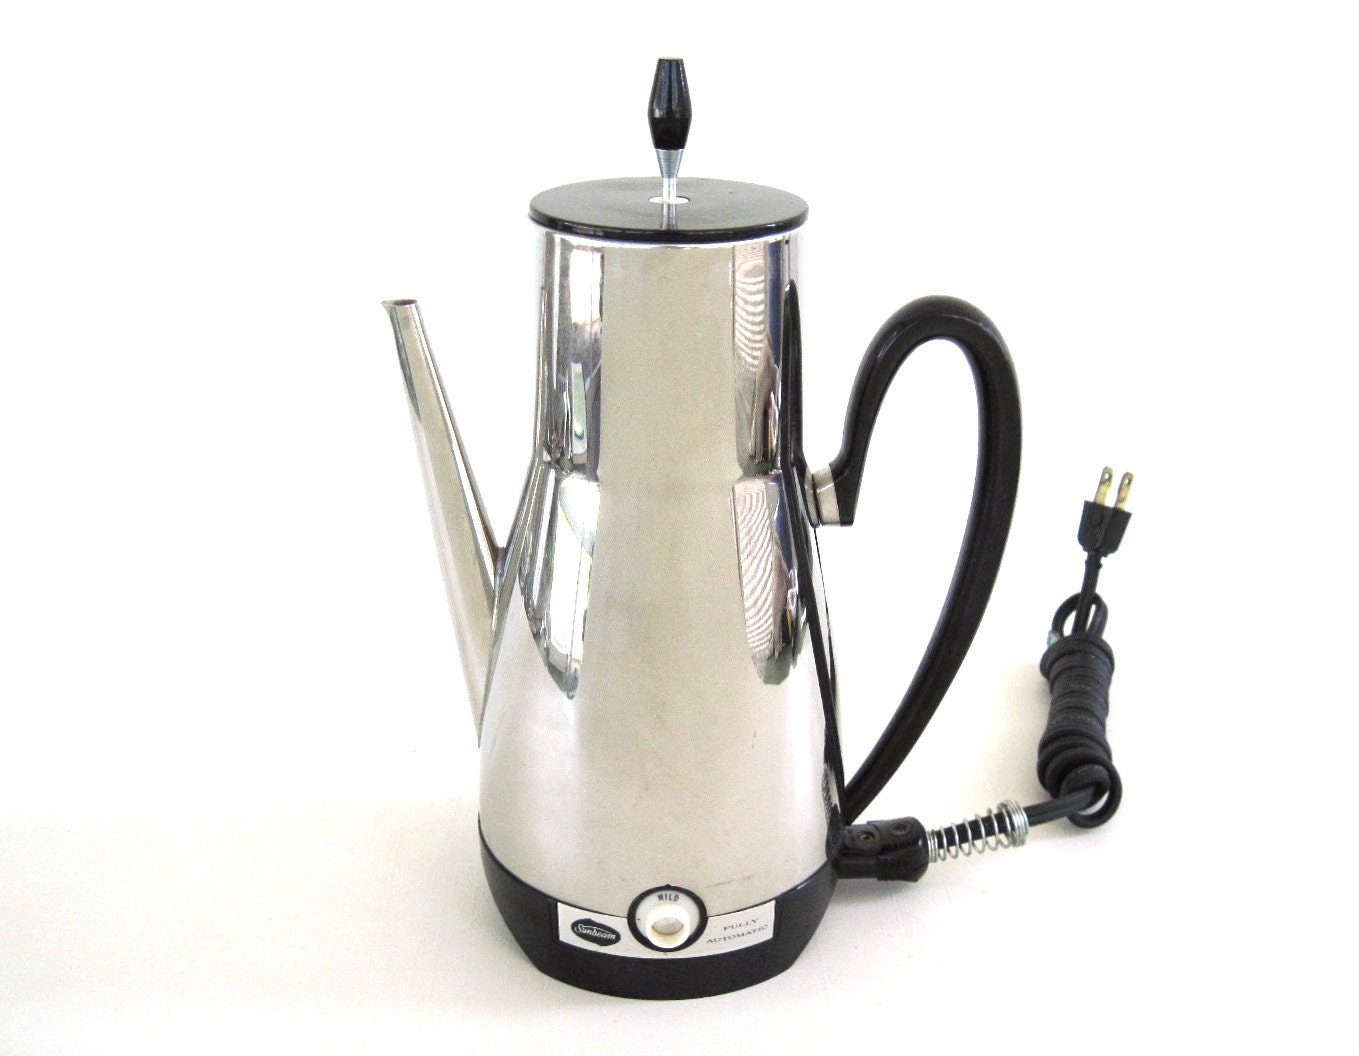 Sunbeam Percolator Coffee Maker : Sunbeam Electric Percolator AP74 Coffee Pot Vintage